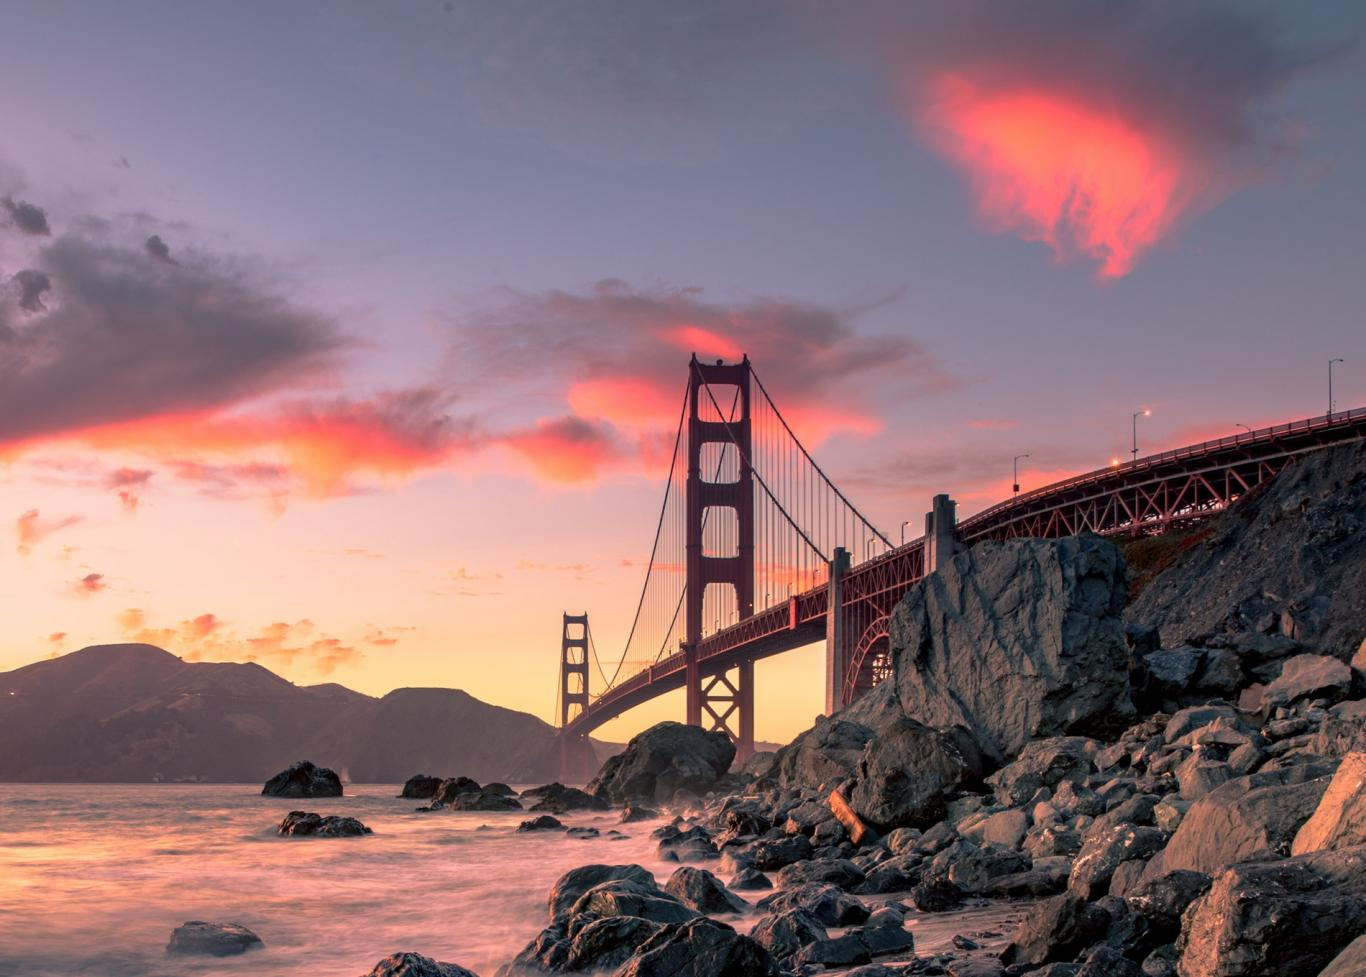 Golden Gate Bridge, San Francisco, United States.jpeg